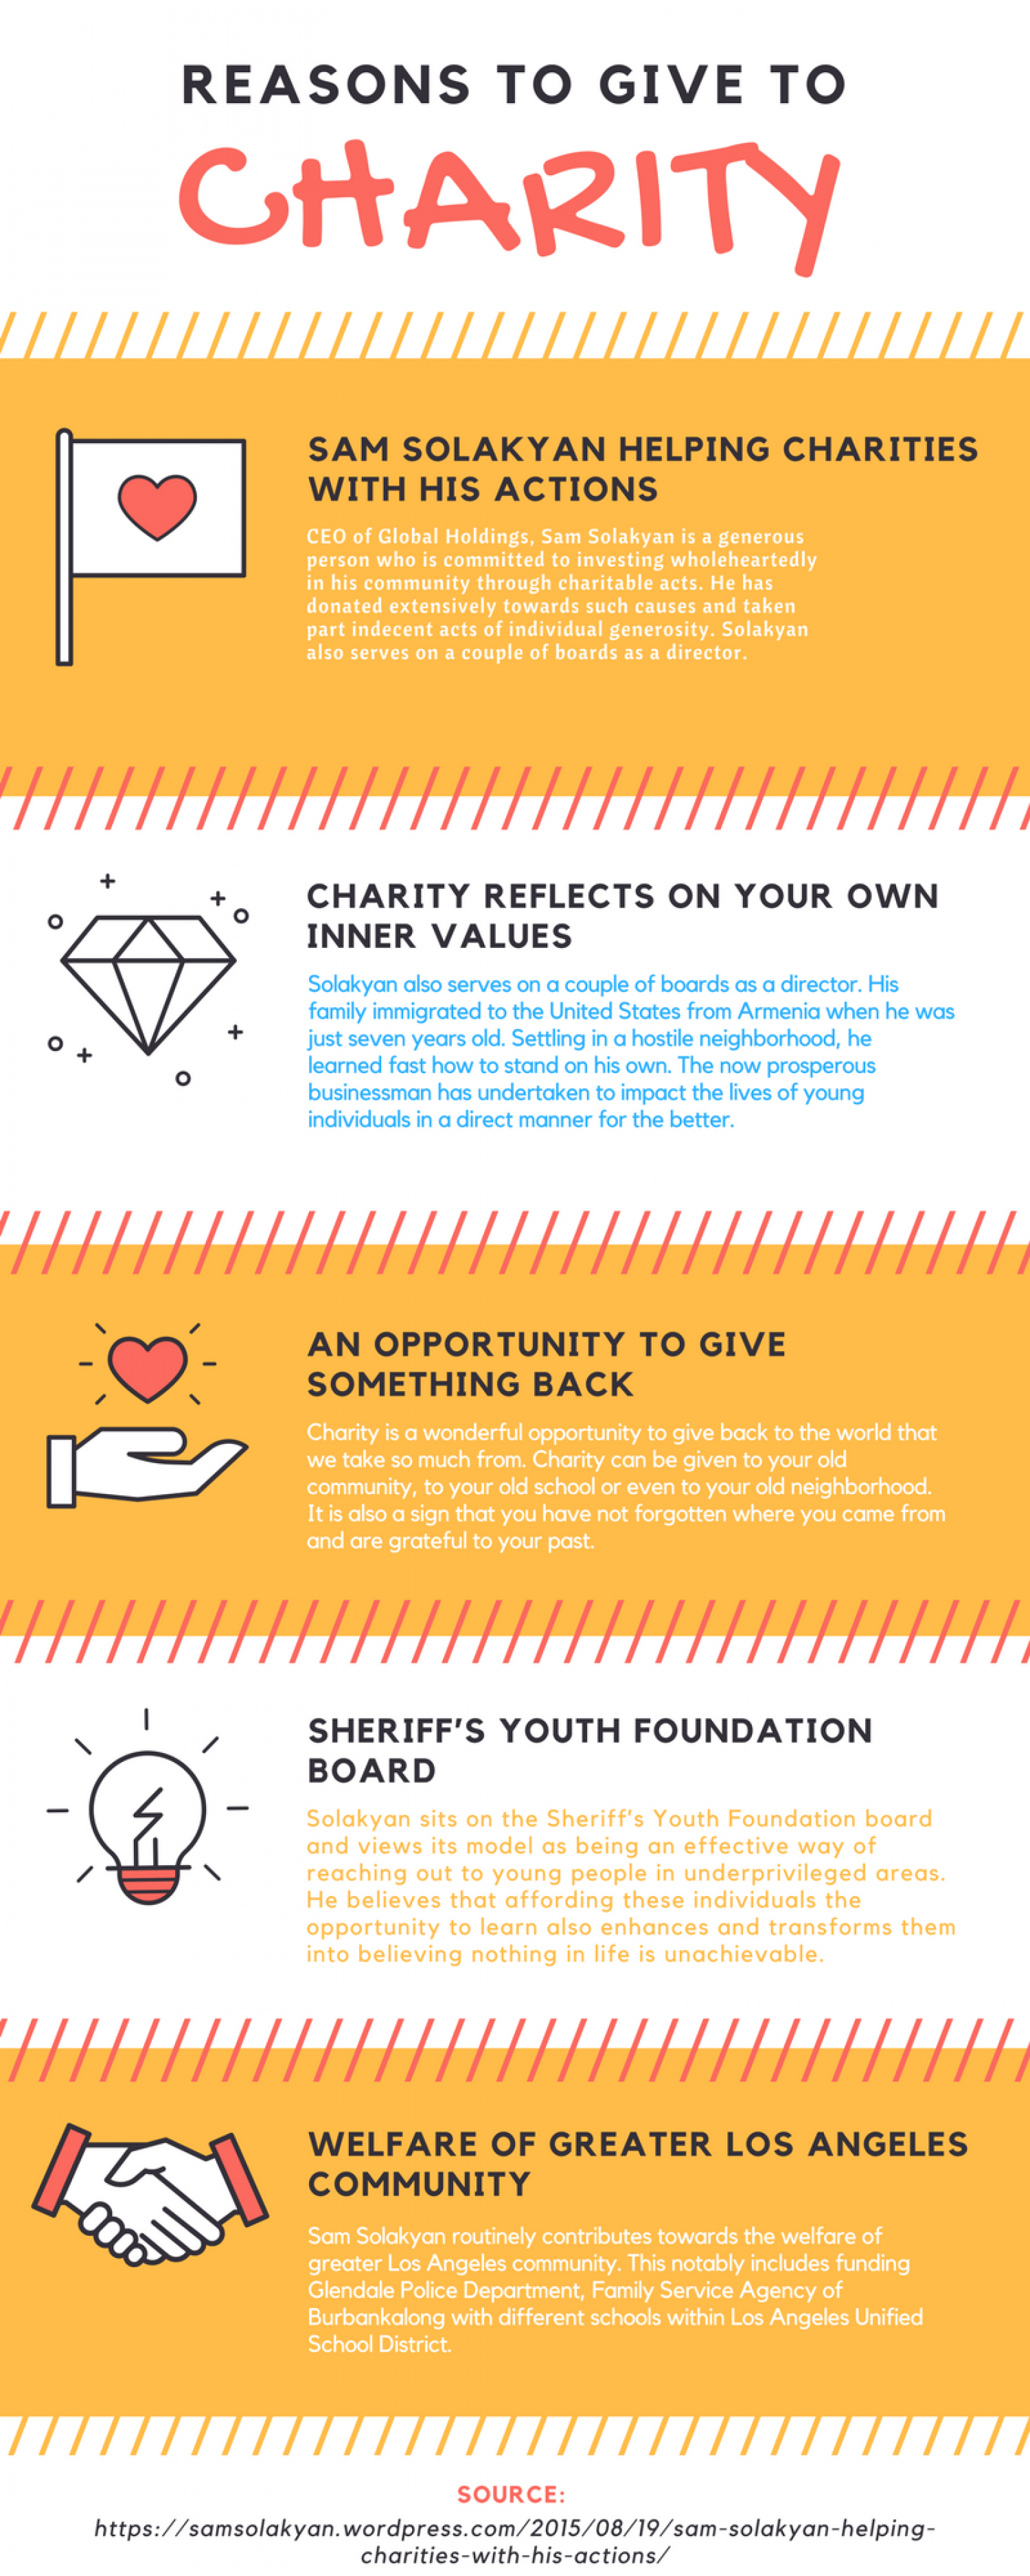 Sam Solakyan Helping Charities with His Actions Infographic